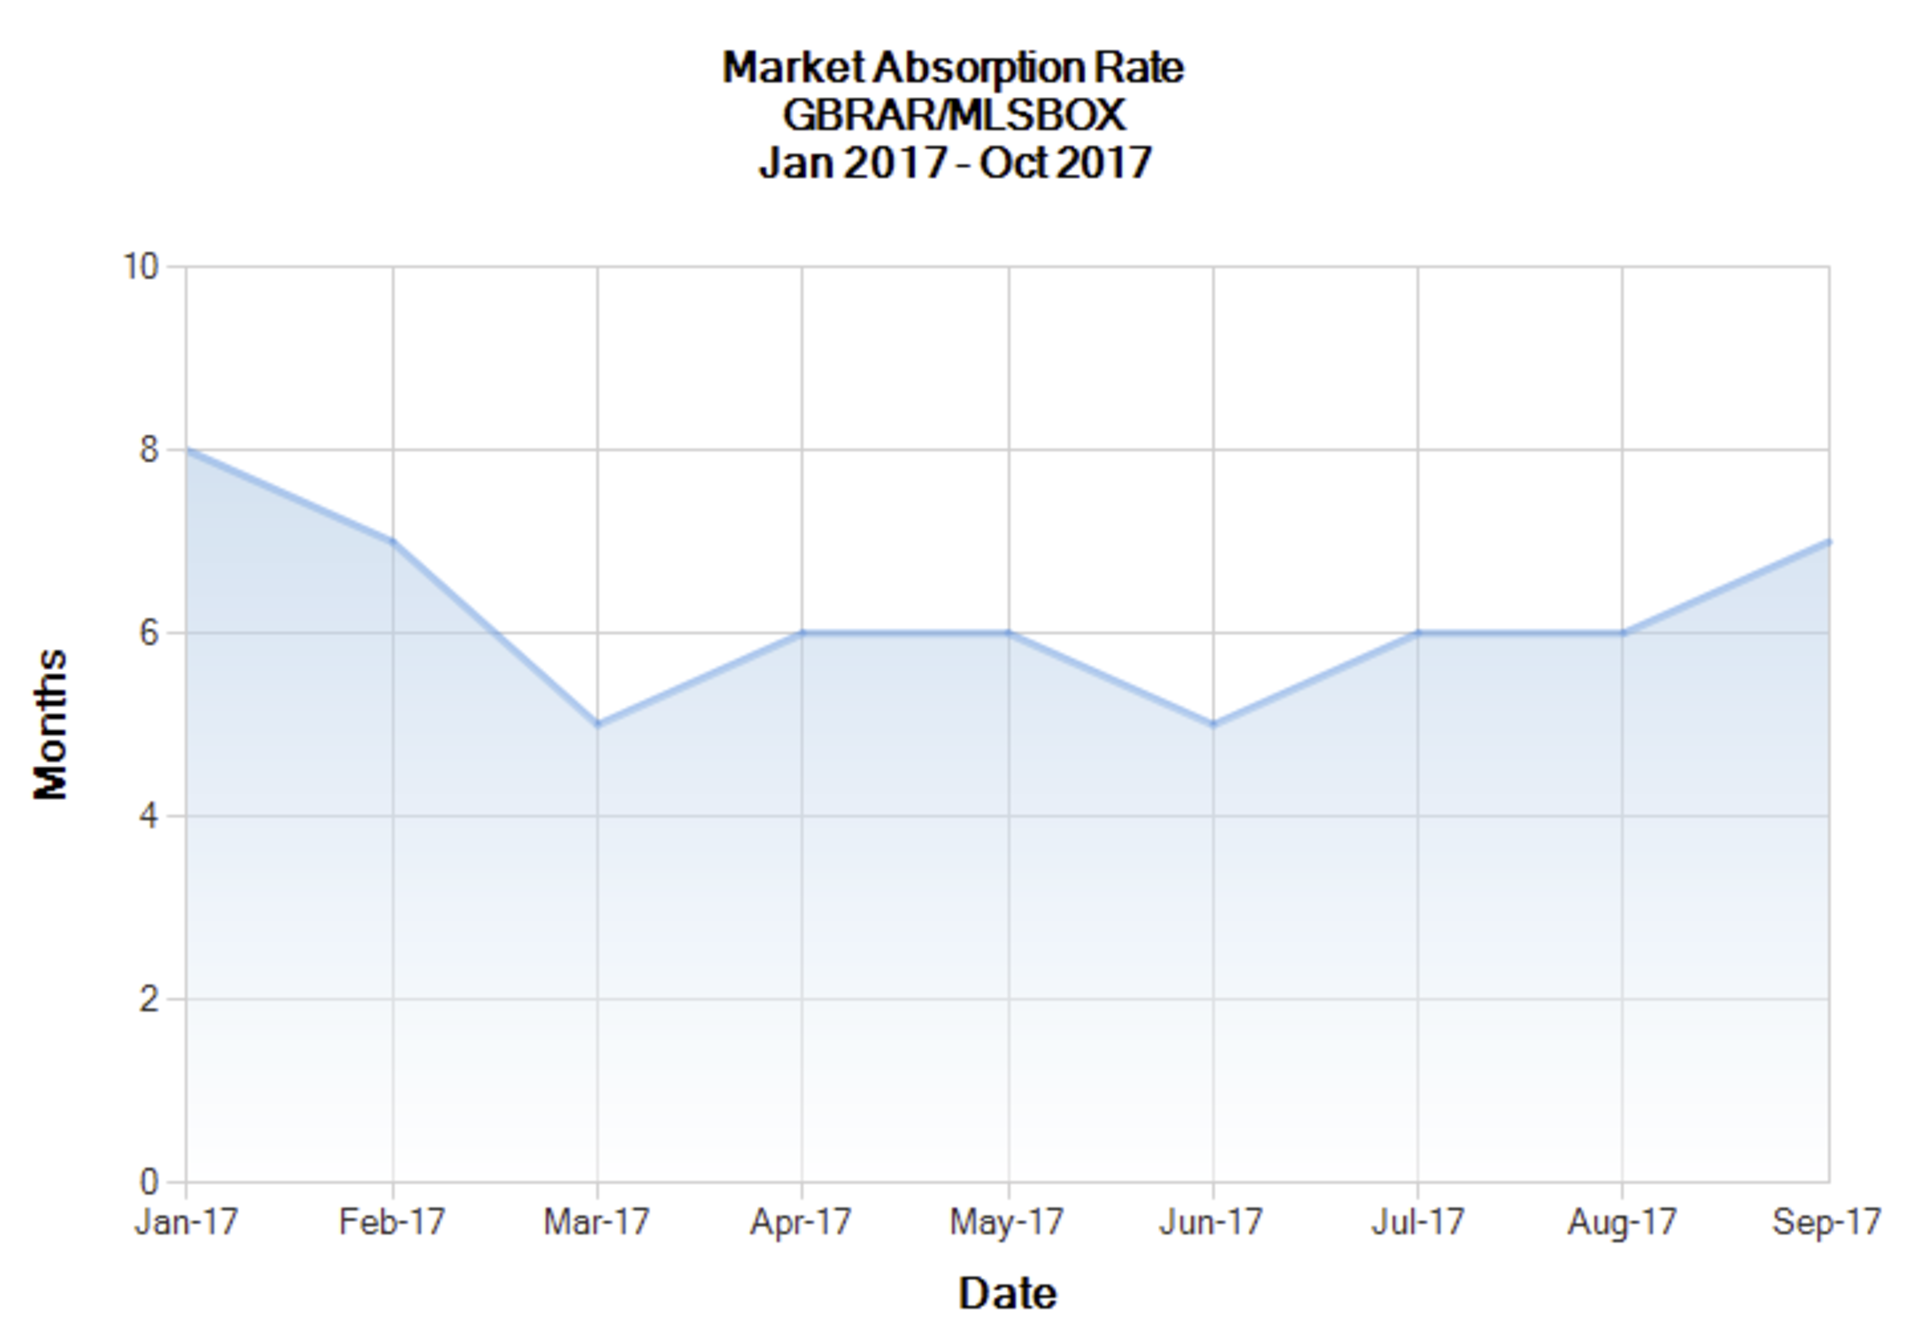 Buyer's Market – Absorption Rates above 6 months